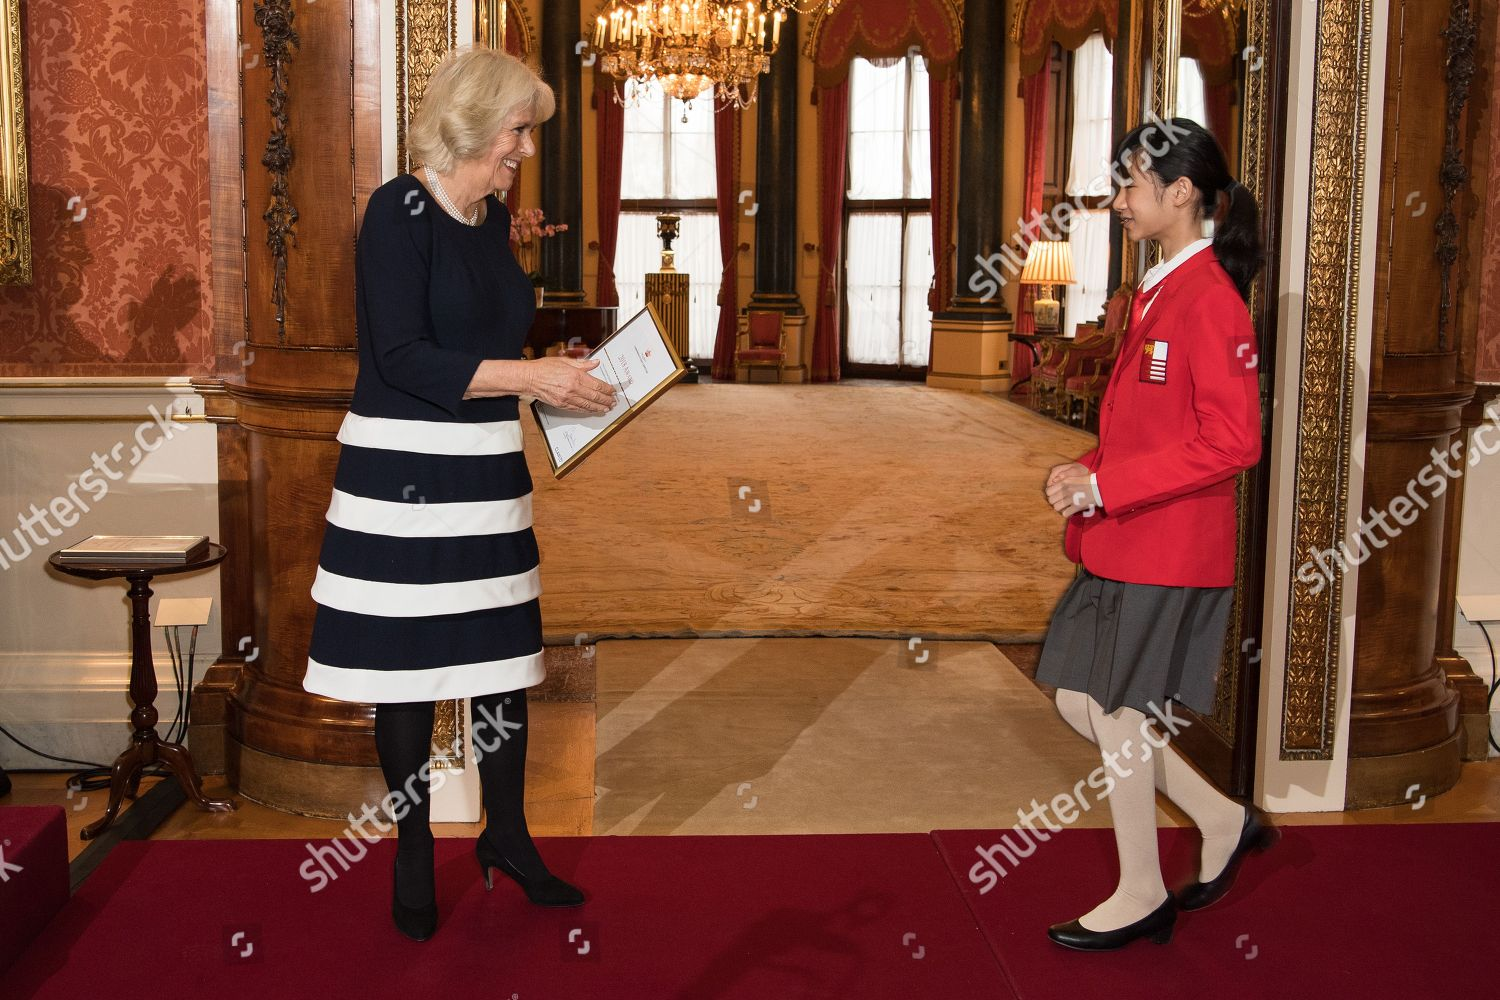 queens commonwealth essay duchess - 600×400